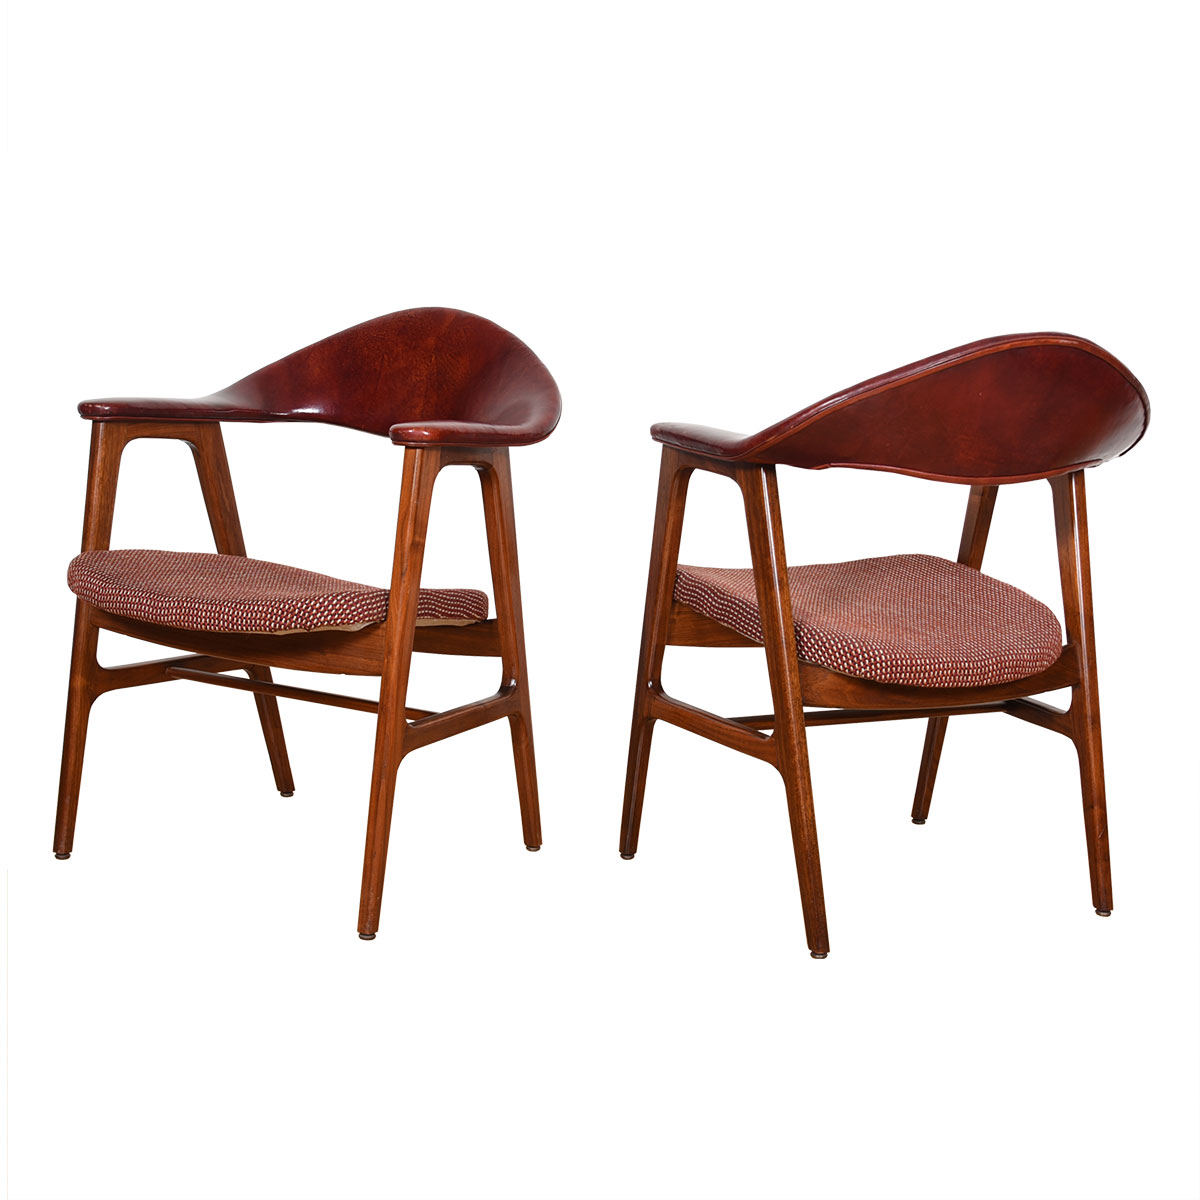 Vintage Leather Pair of Sculpted Modernist Accent Chairs with Arms